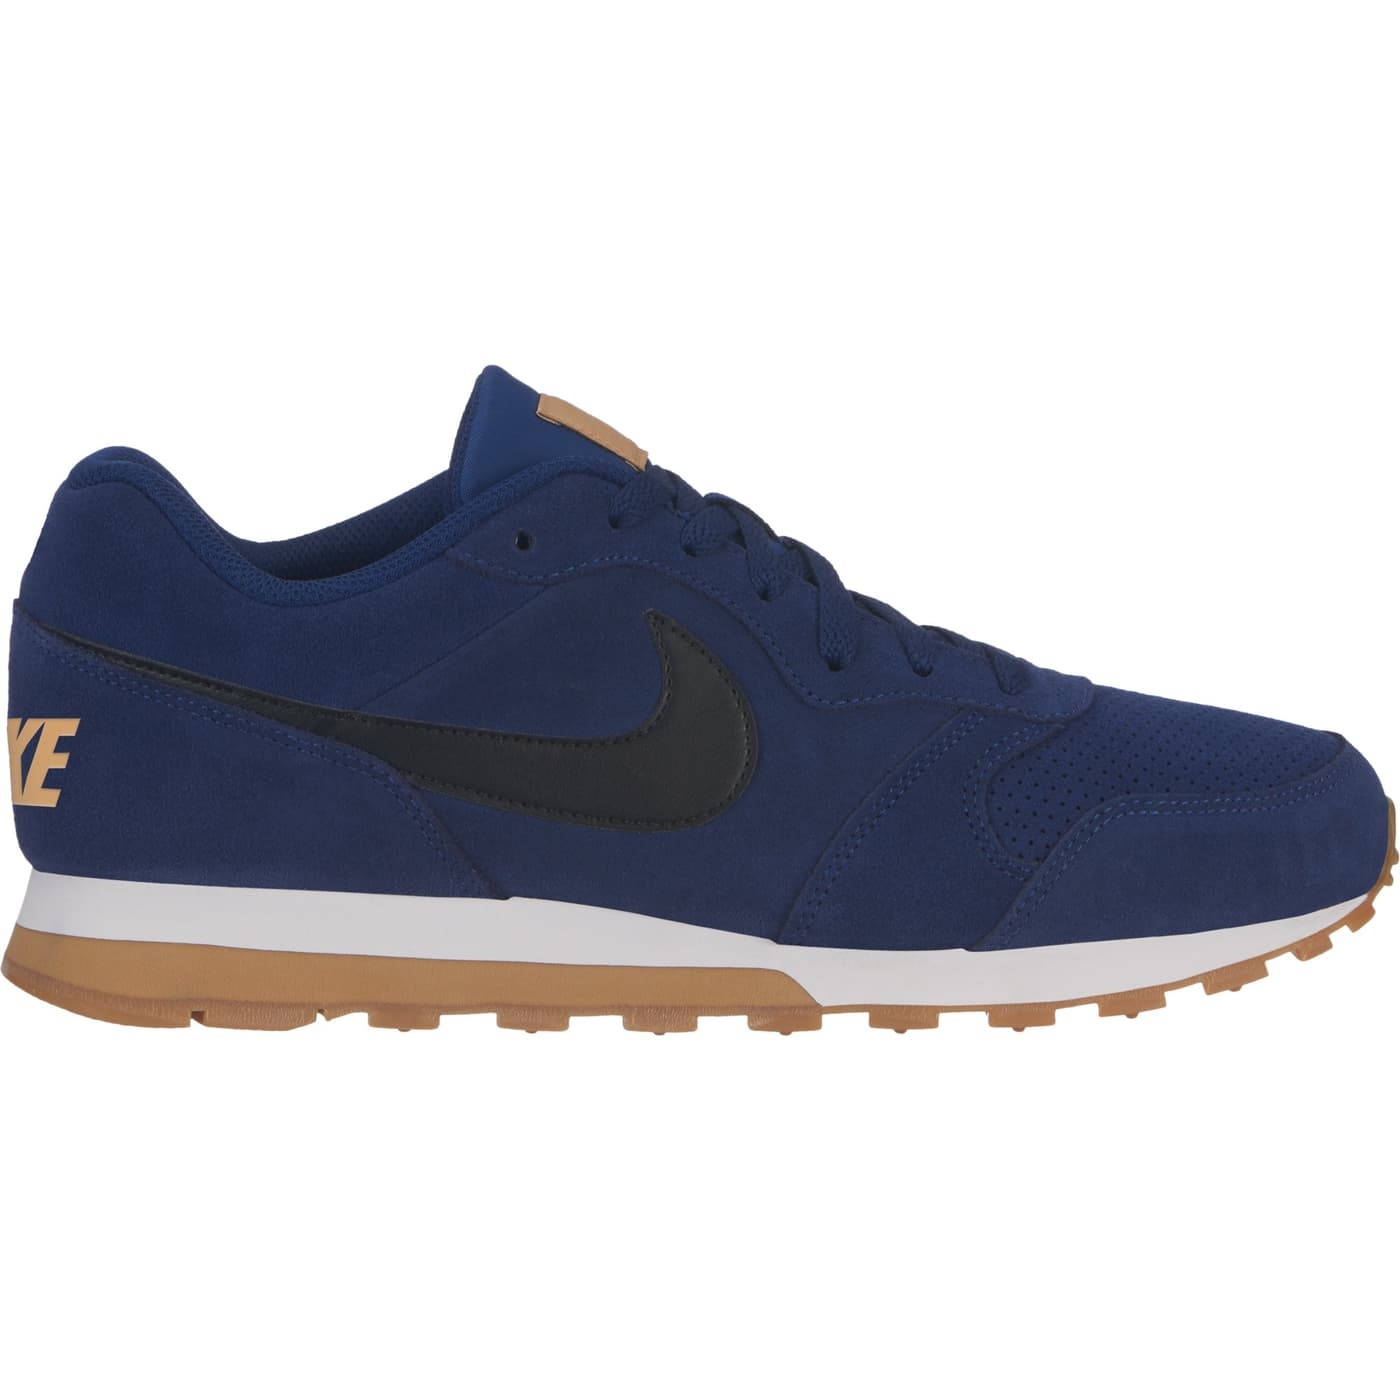 the latest e7cb1 0a833 Nike MD Runner 2 Suede Chaussures de loisirs pour homme ...